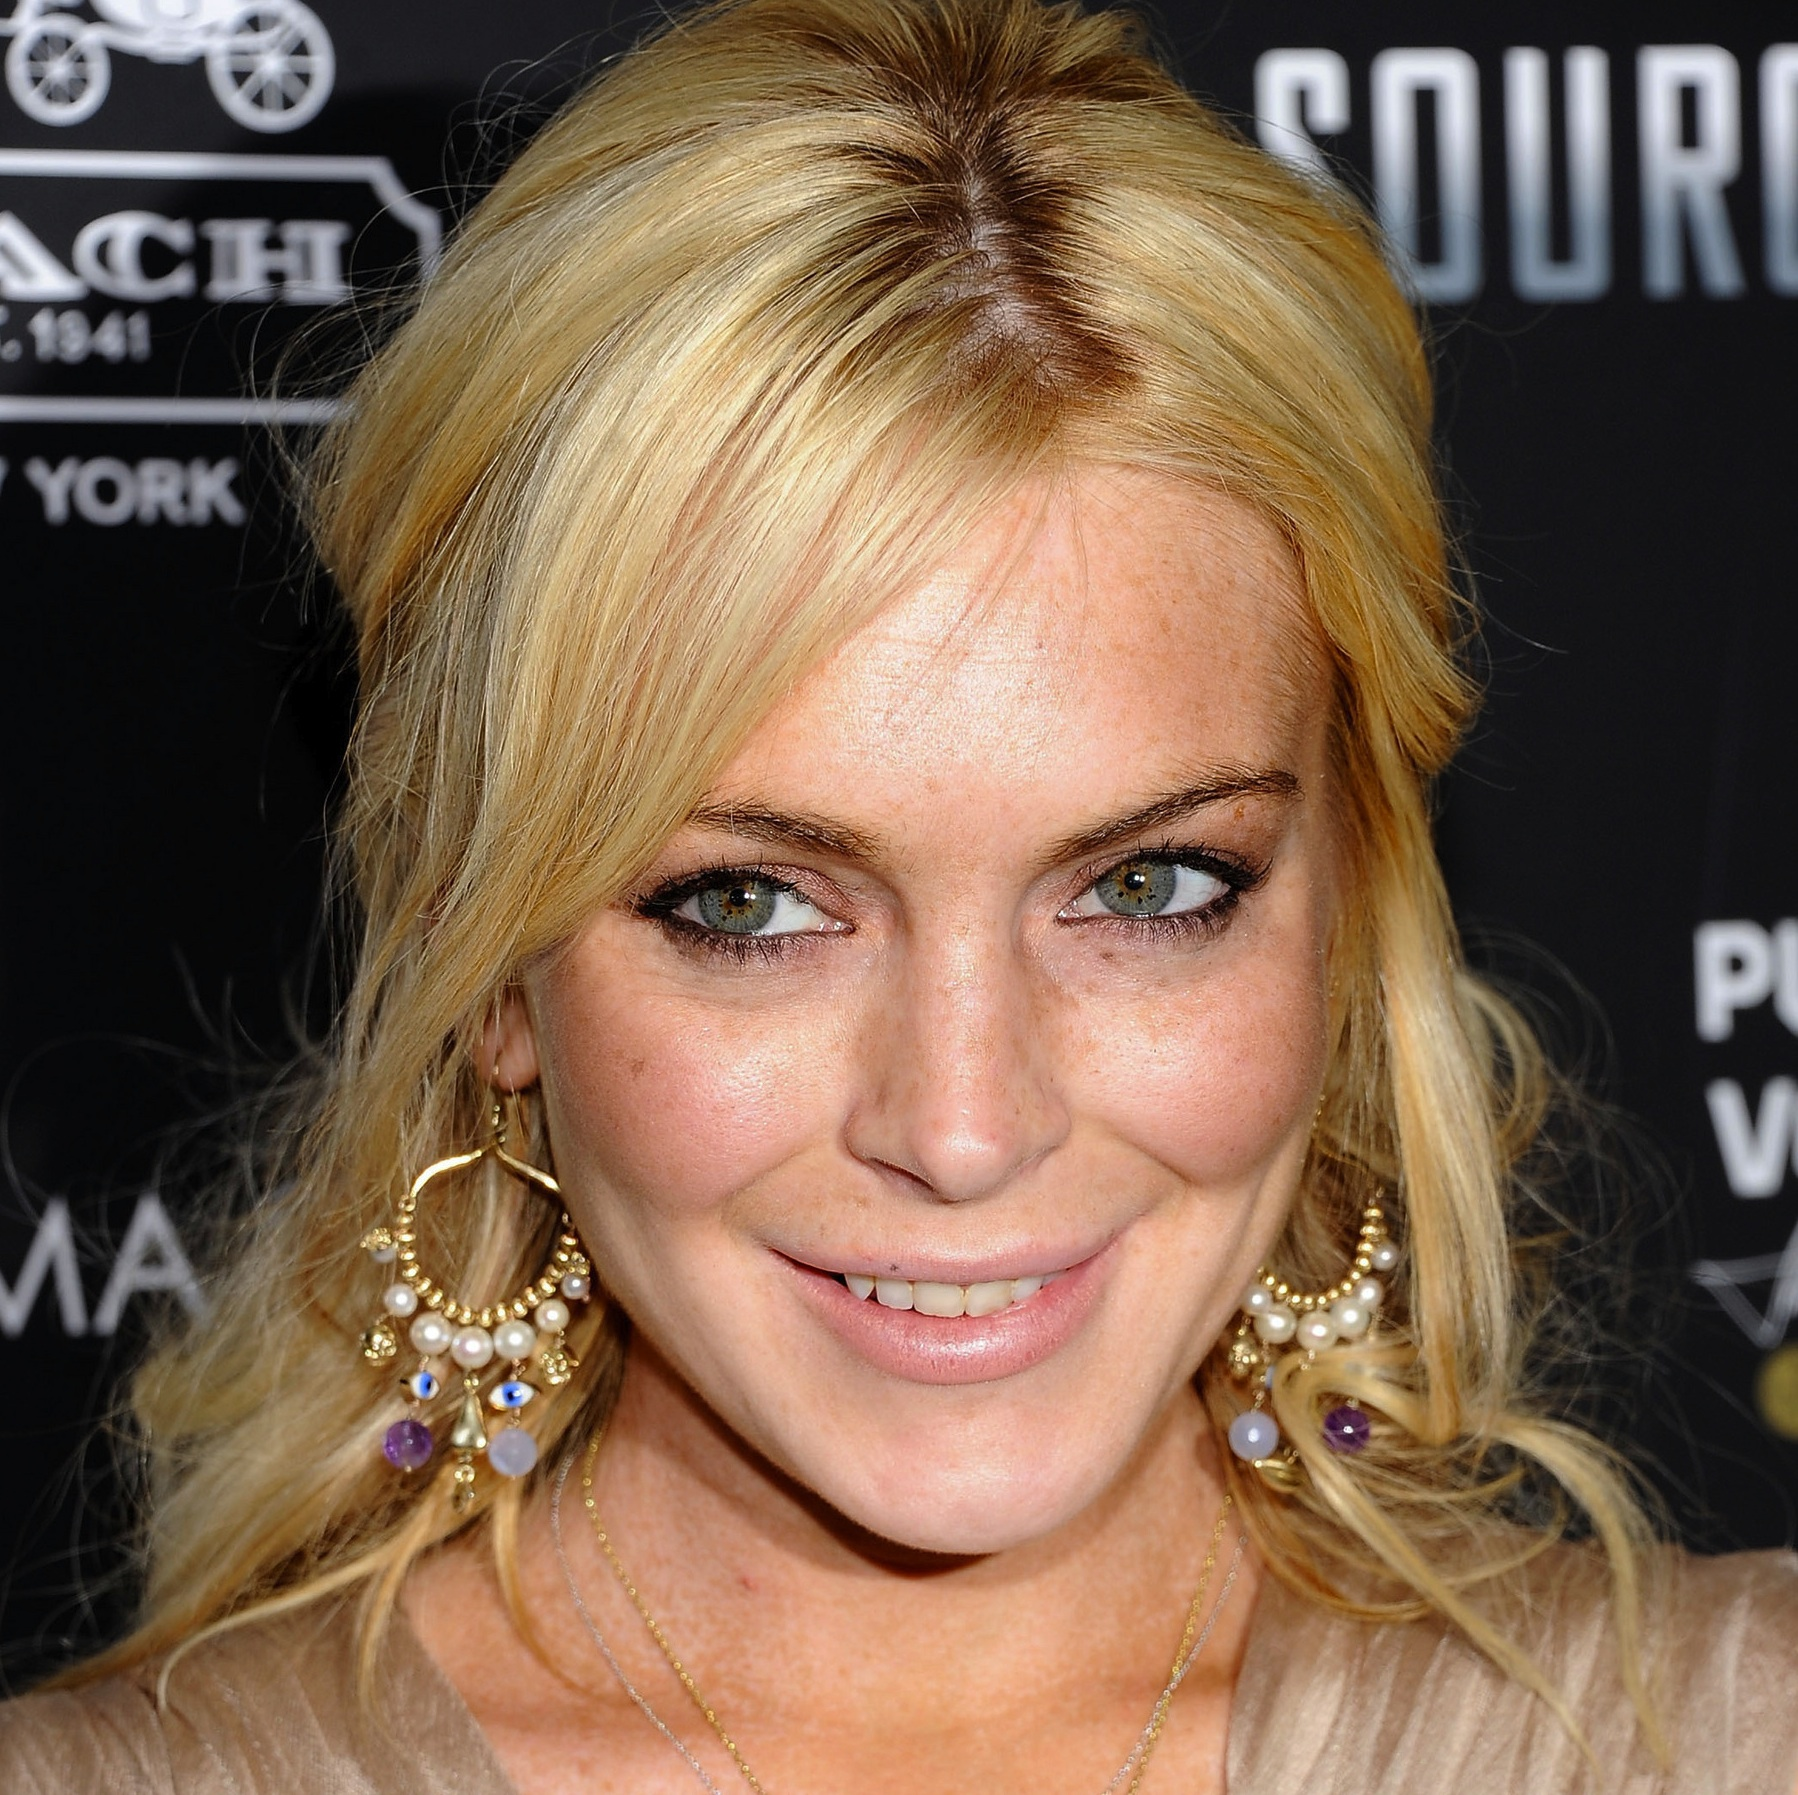 000_009_448_lindsay-lohan-2011-03-31-screening-of-source-code-in-new-york-lindsay-lohan-20627614-1824-2560